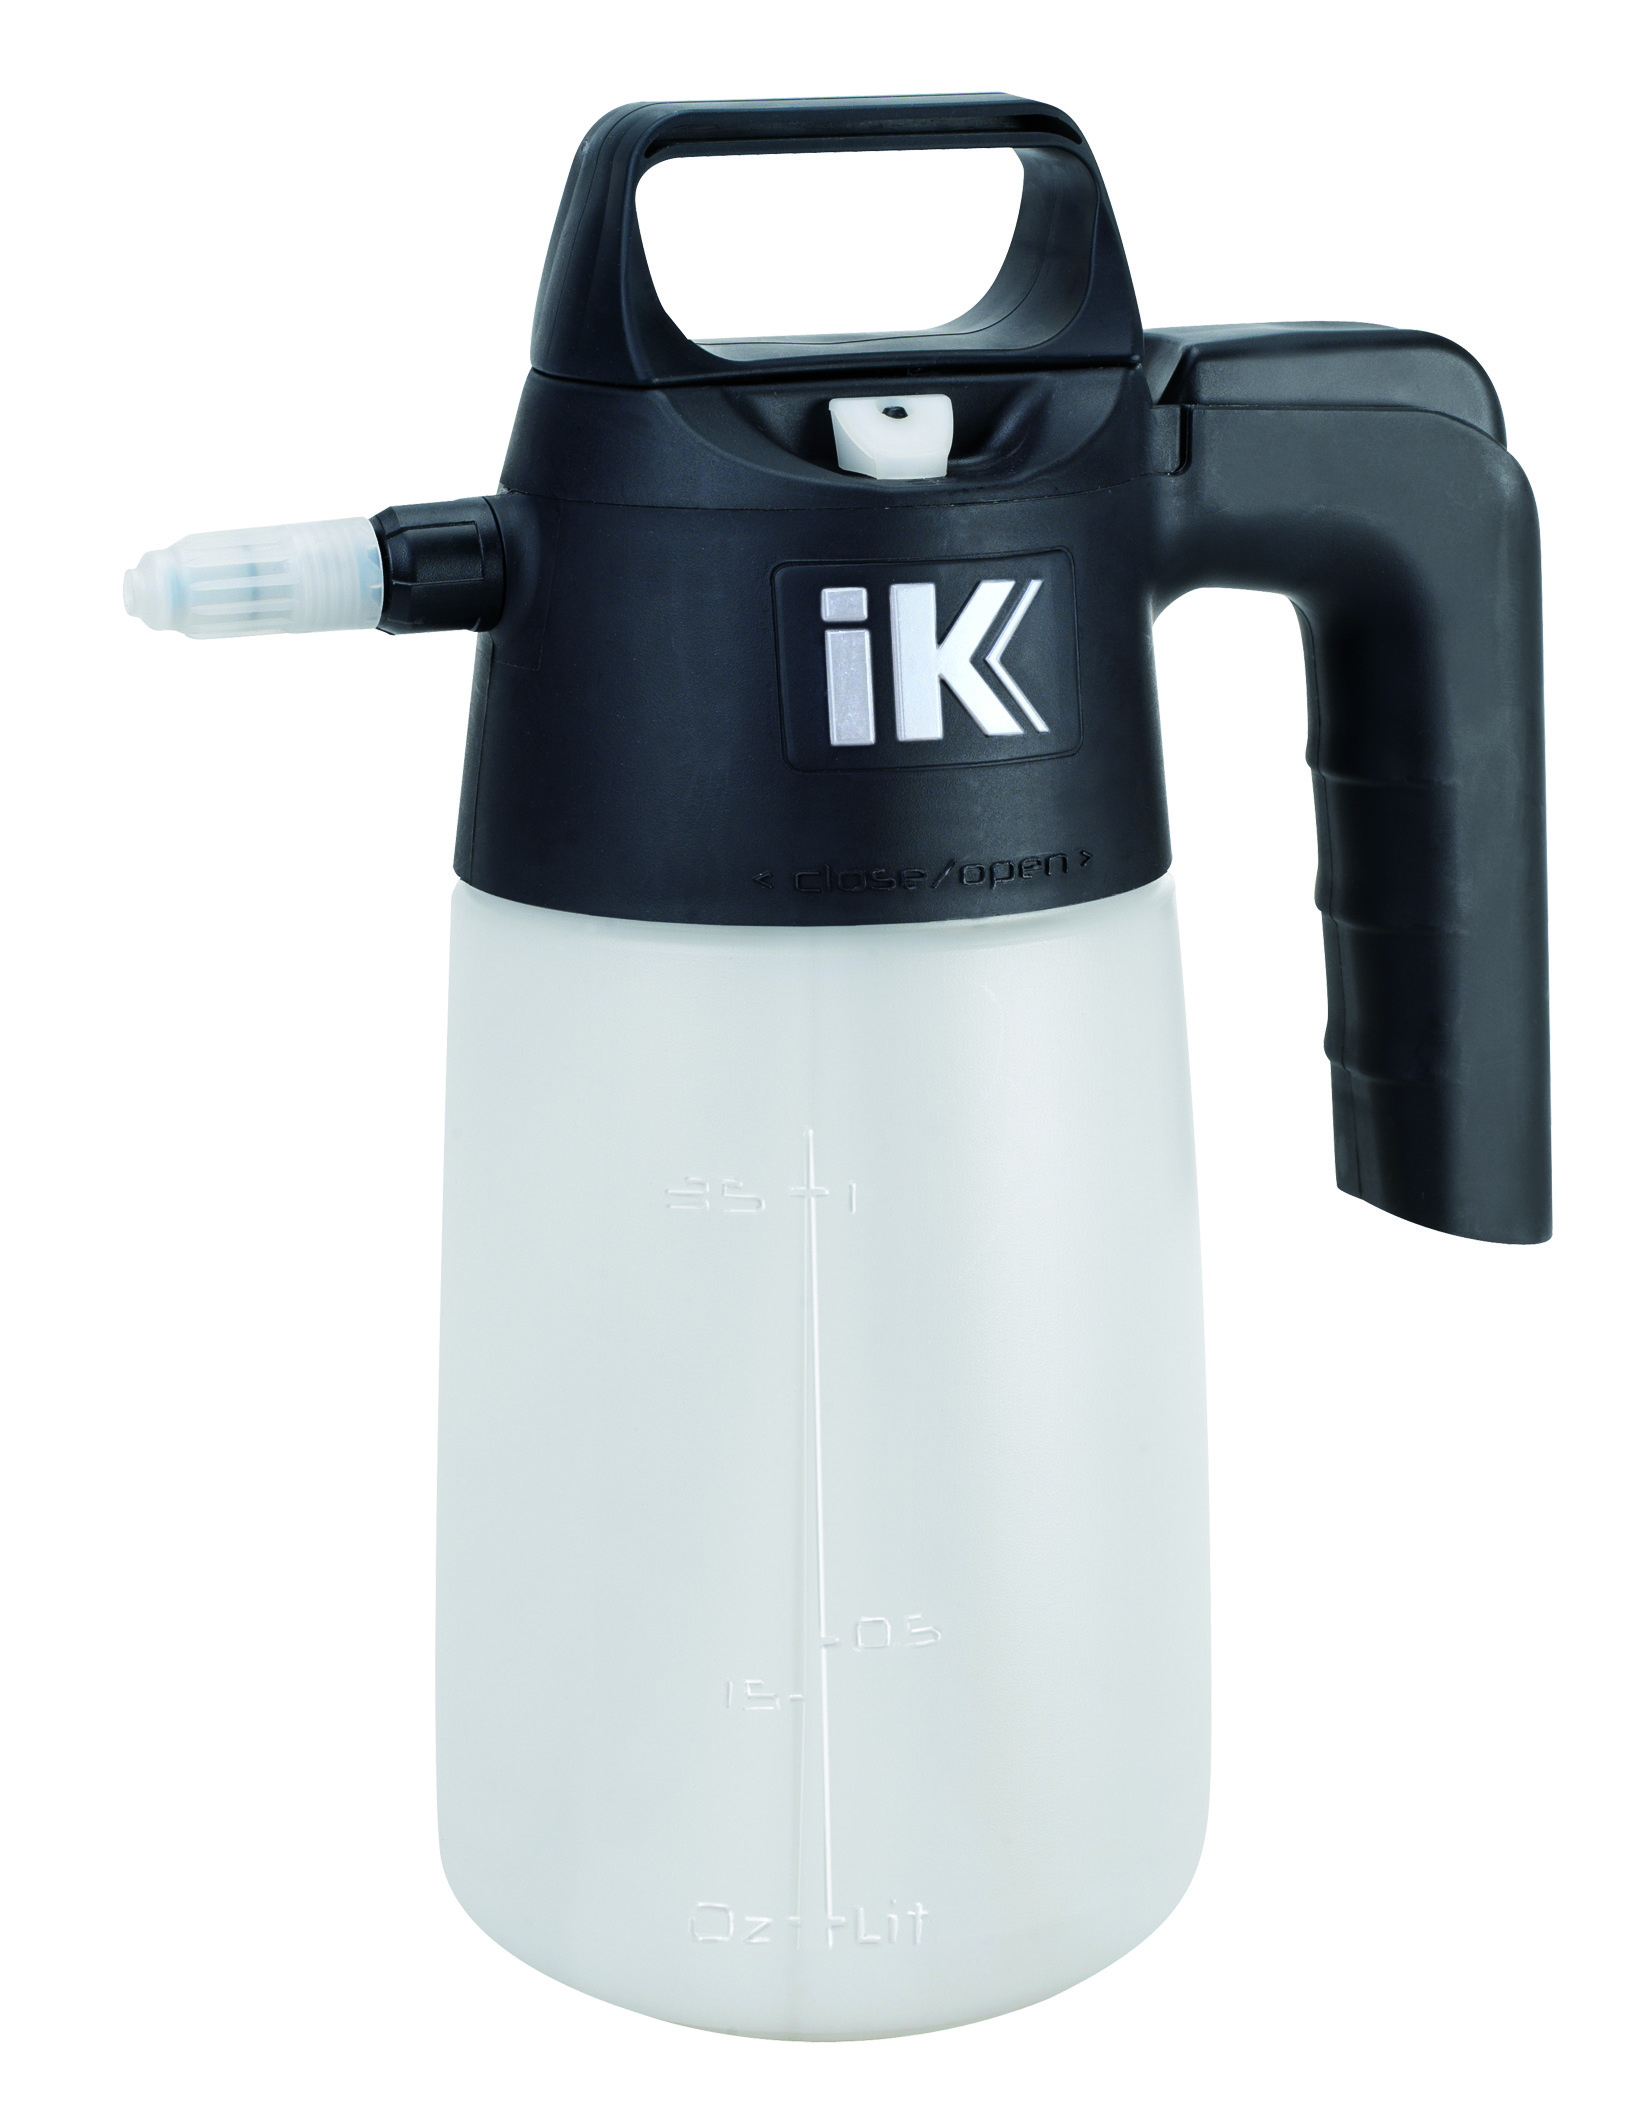 iK sprayer uk goizper